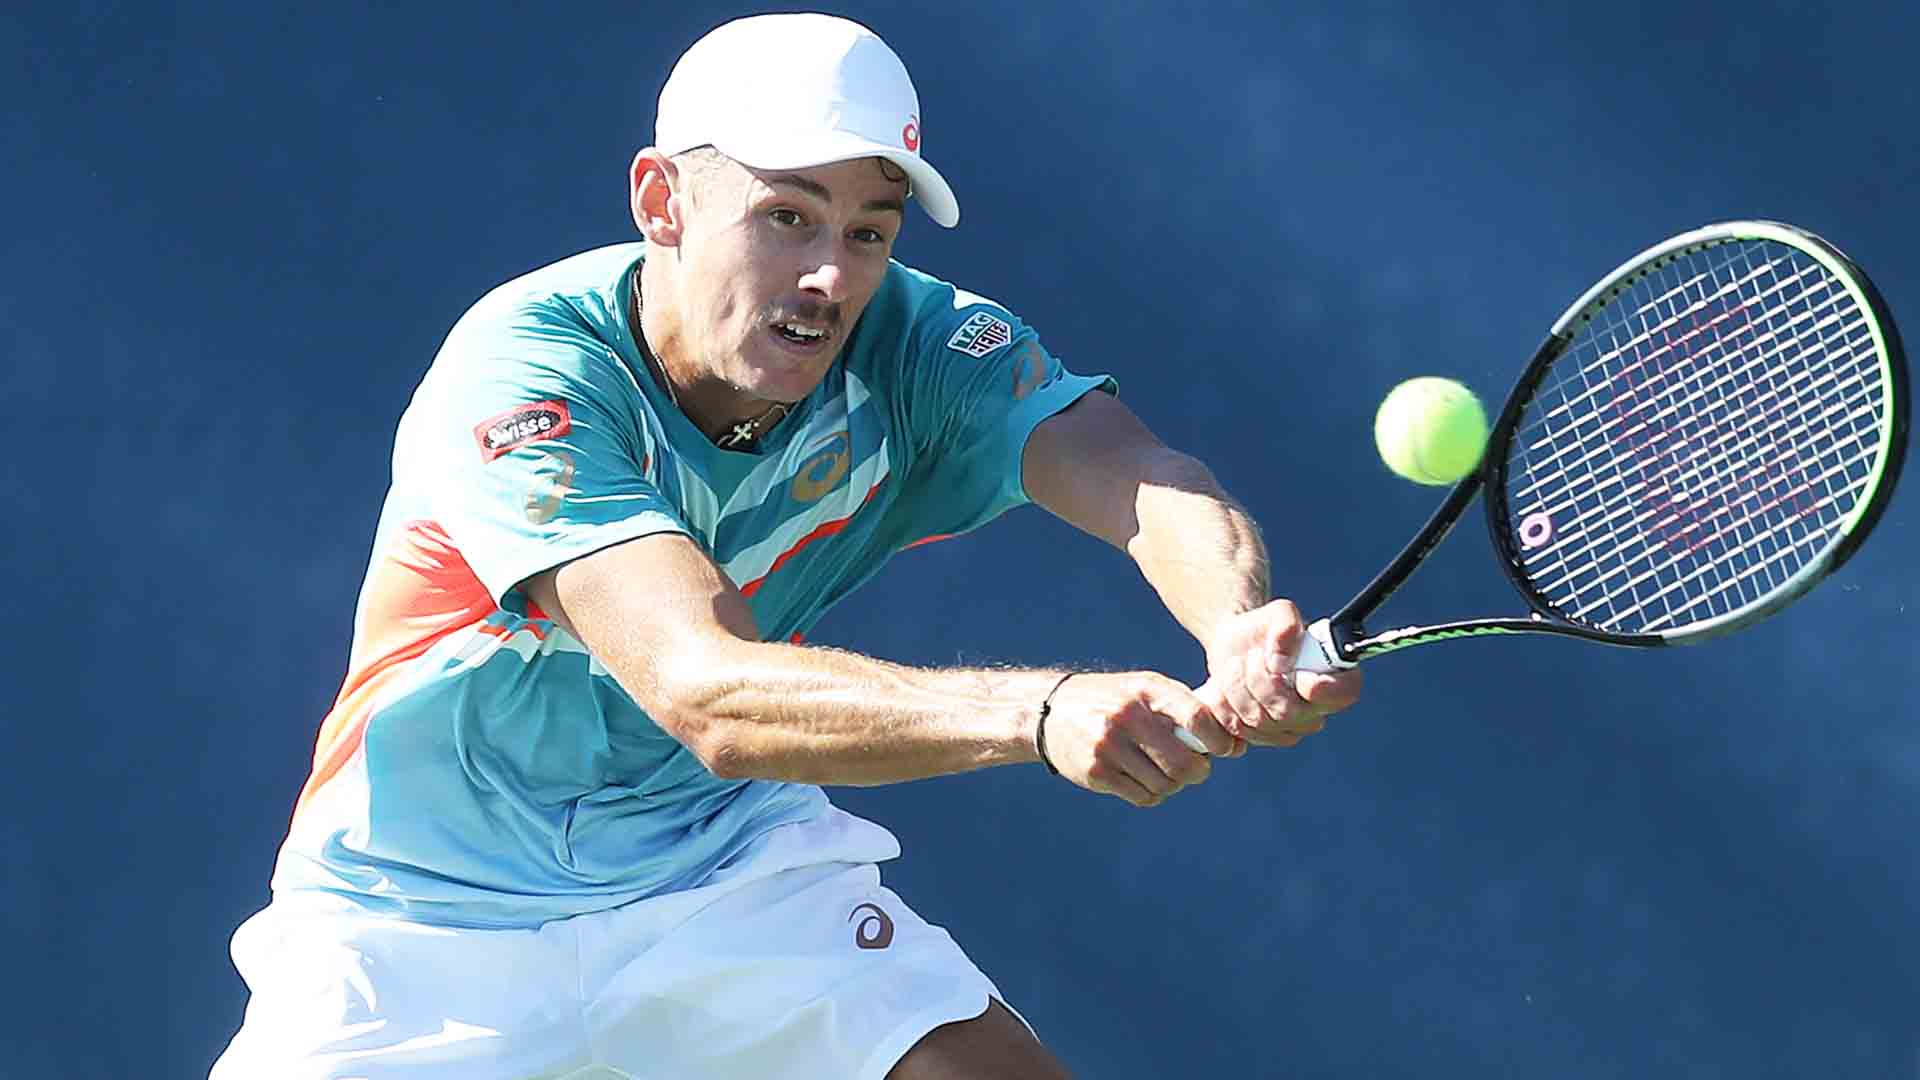 <a href='/en/players/alex-de-minaur/dh58/overview'>Alex de Minaur</a> is through to the <a href='/en/tournaments/us-open/560/overview'>US Open</a> fourth round for the second straight year.